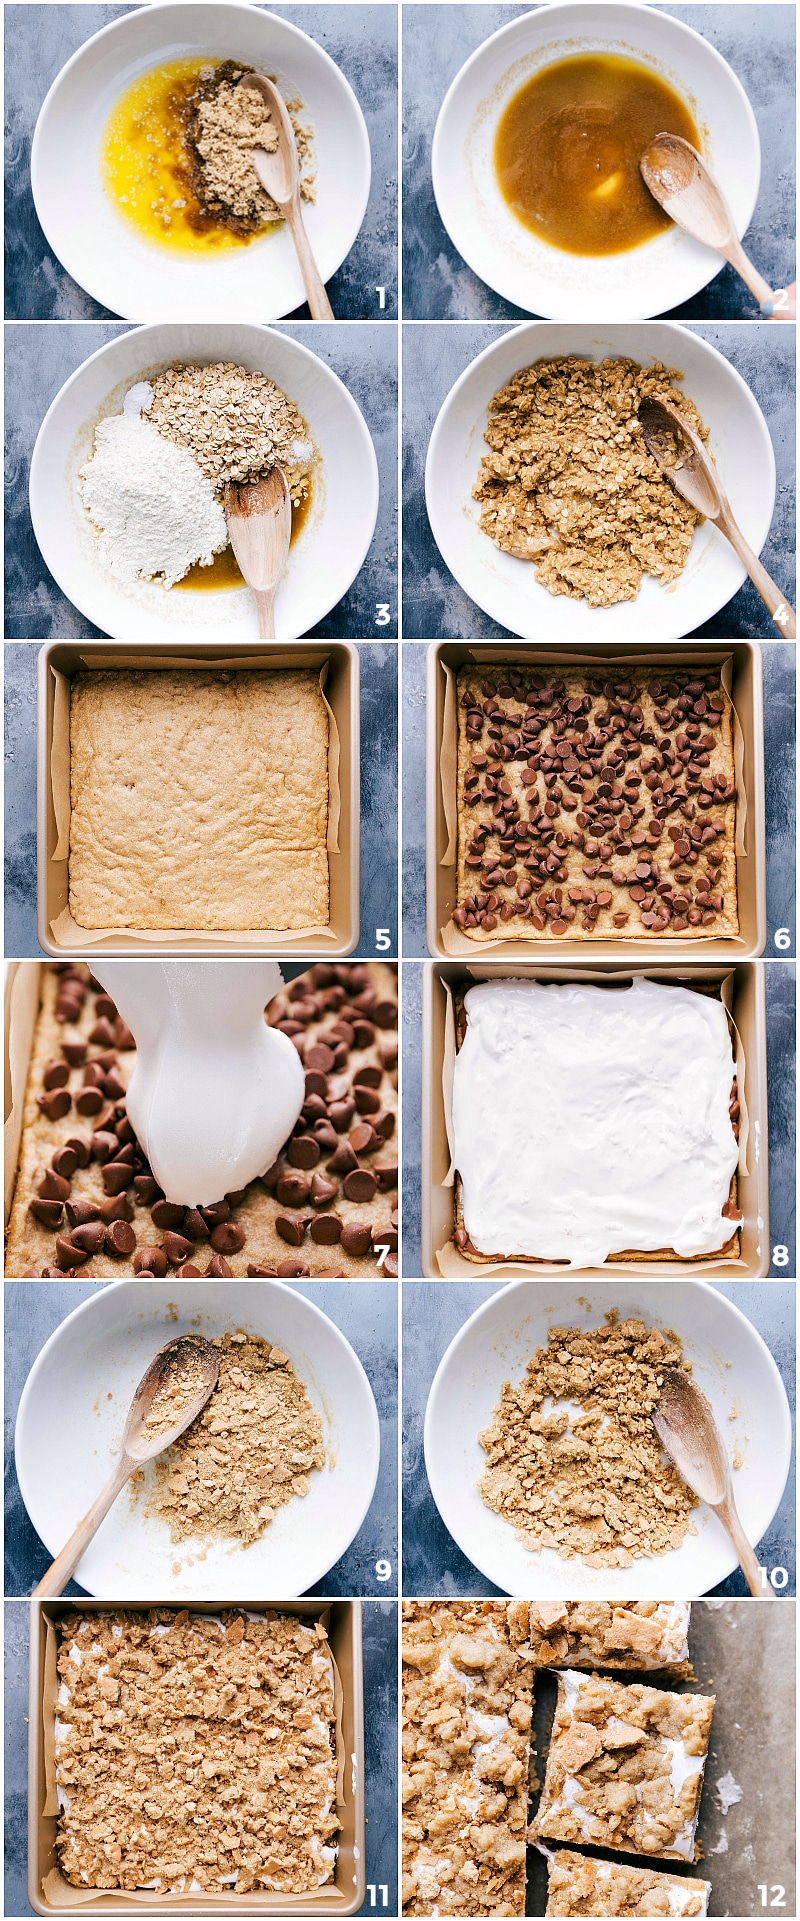 Process shots-- images of cookie layer being made and then put in the prepared pan, then baked, and the chocolate chips and Marshmallow Fluff being added on top. Then images of the crumble topping being put on top and baked ready to be eaten. And finally a finished shot of the s'mores cookie bars.